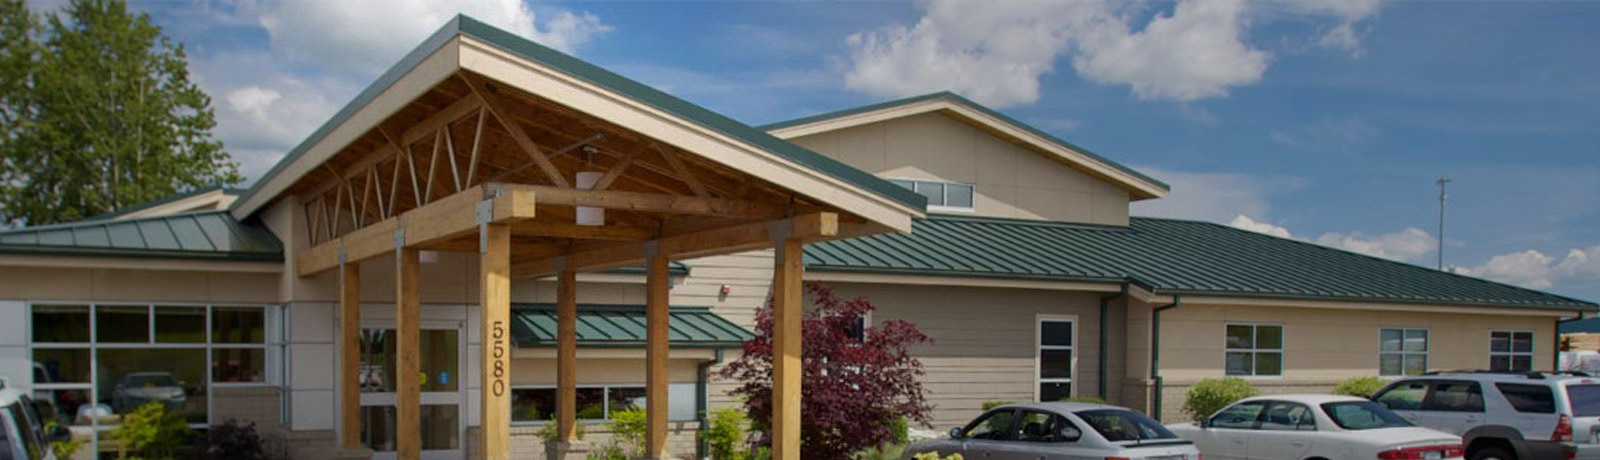 Family Care Network | Clinics and Urgent Care for Skagit